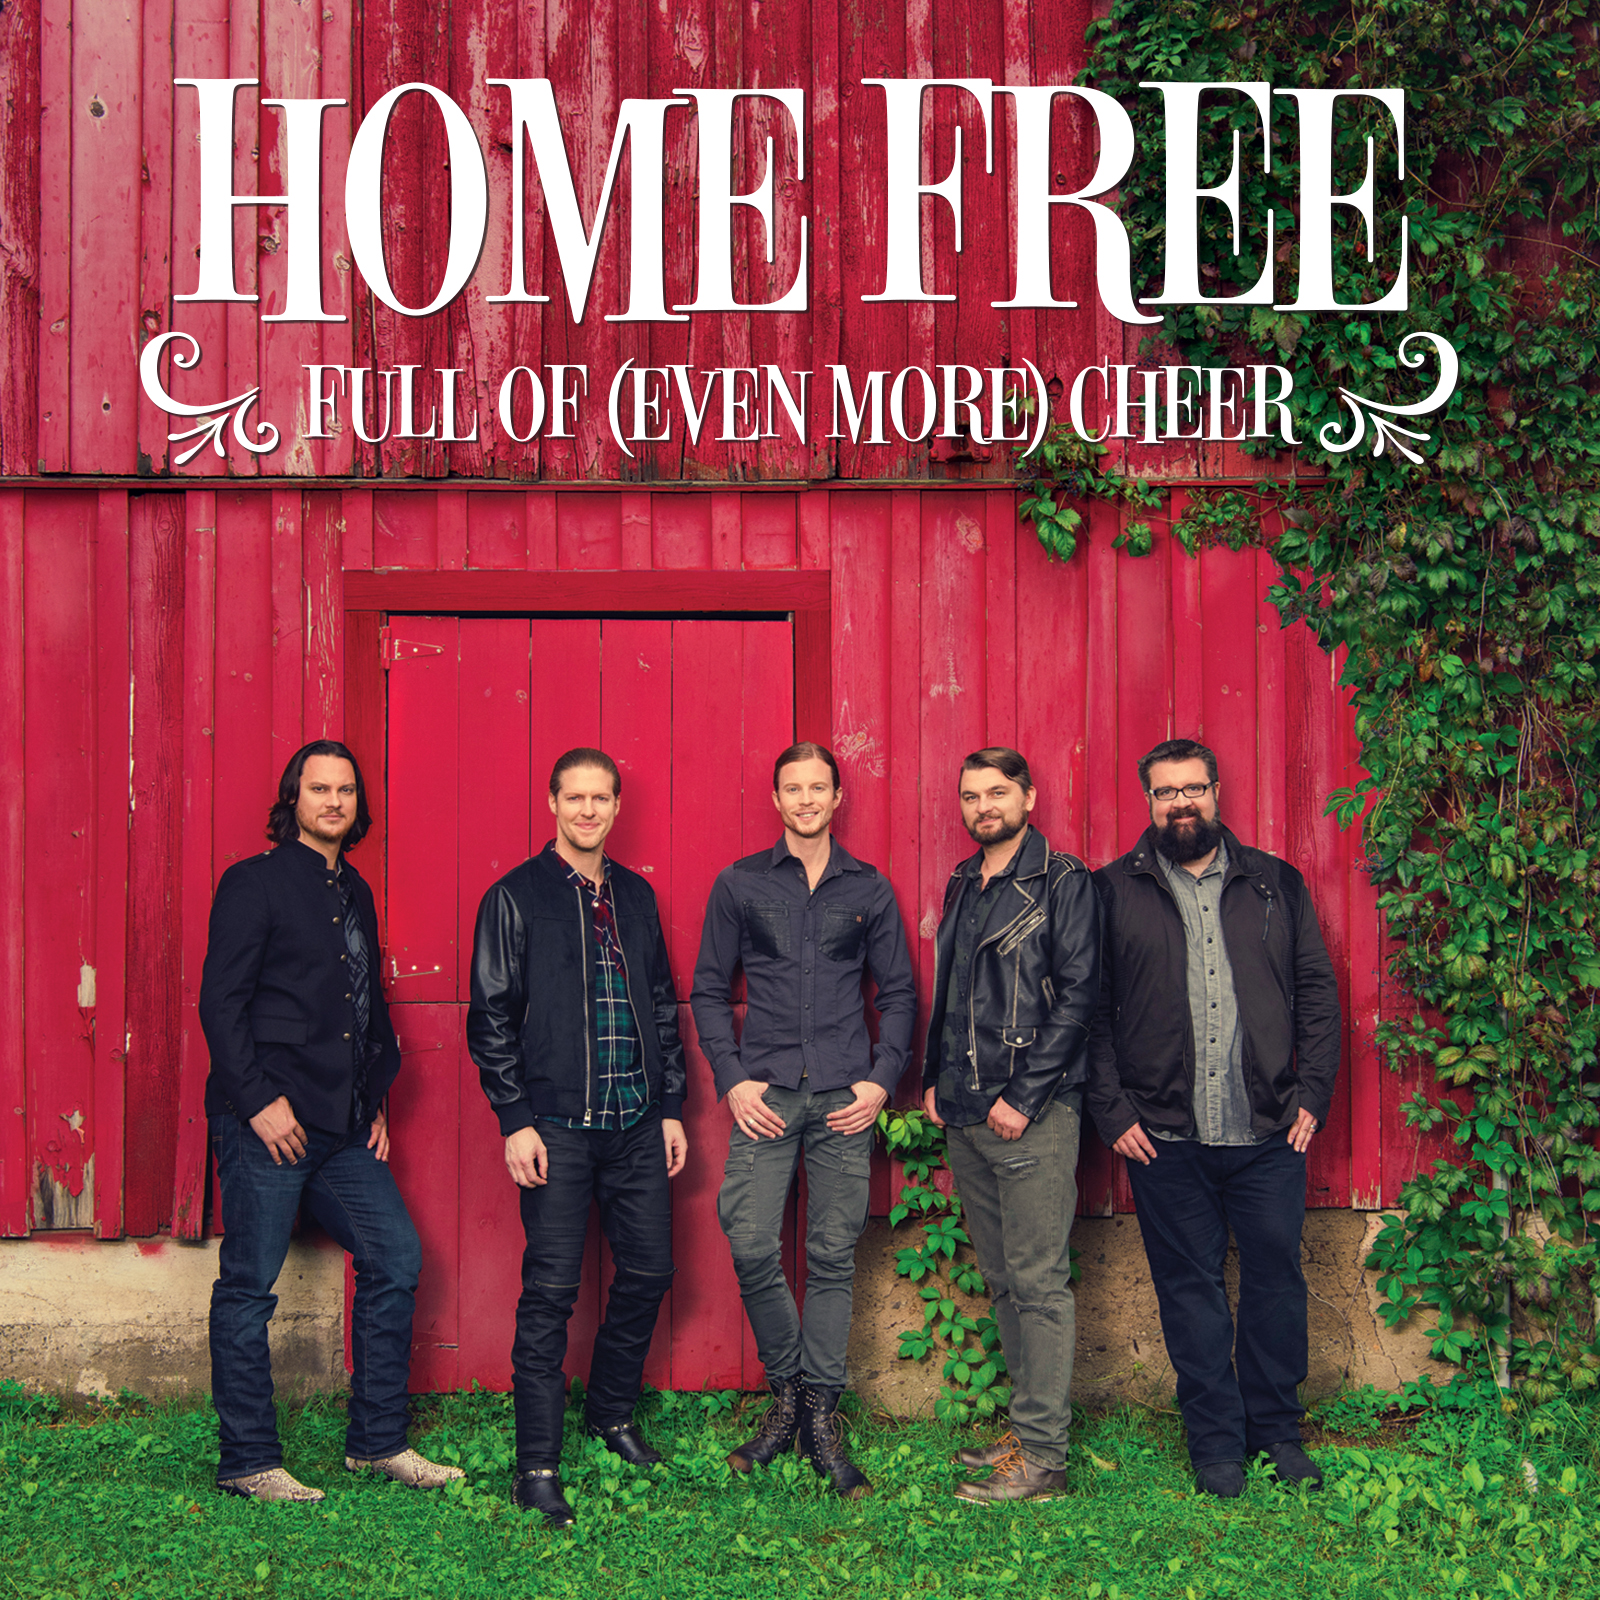 home free s full of even more cheer debuts at 2 on billboard s